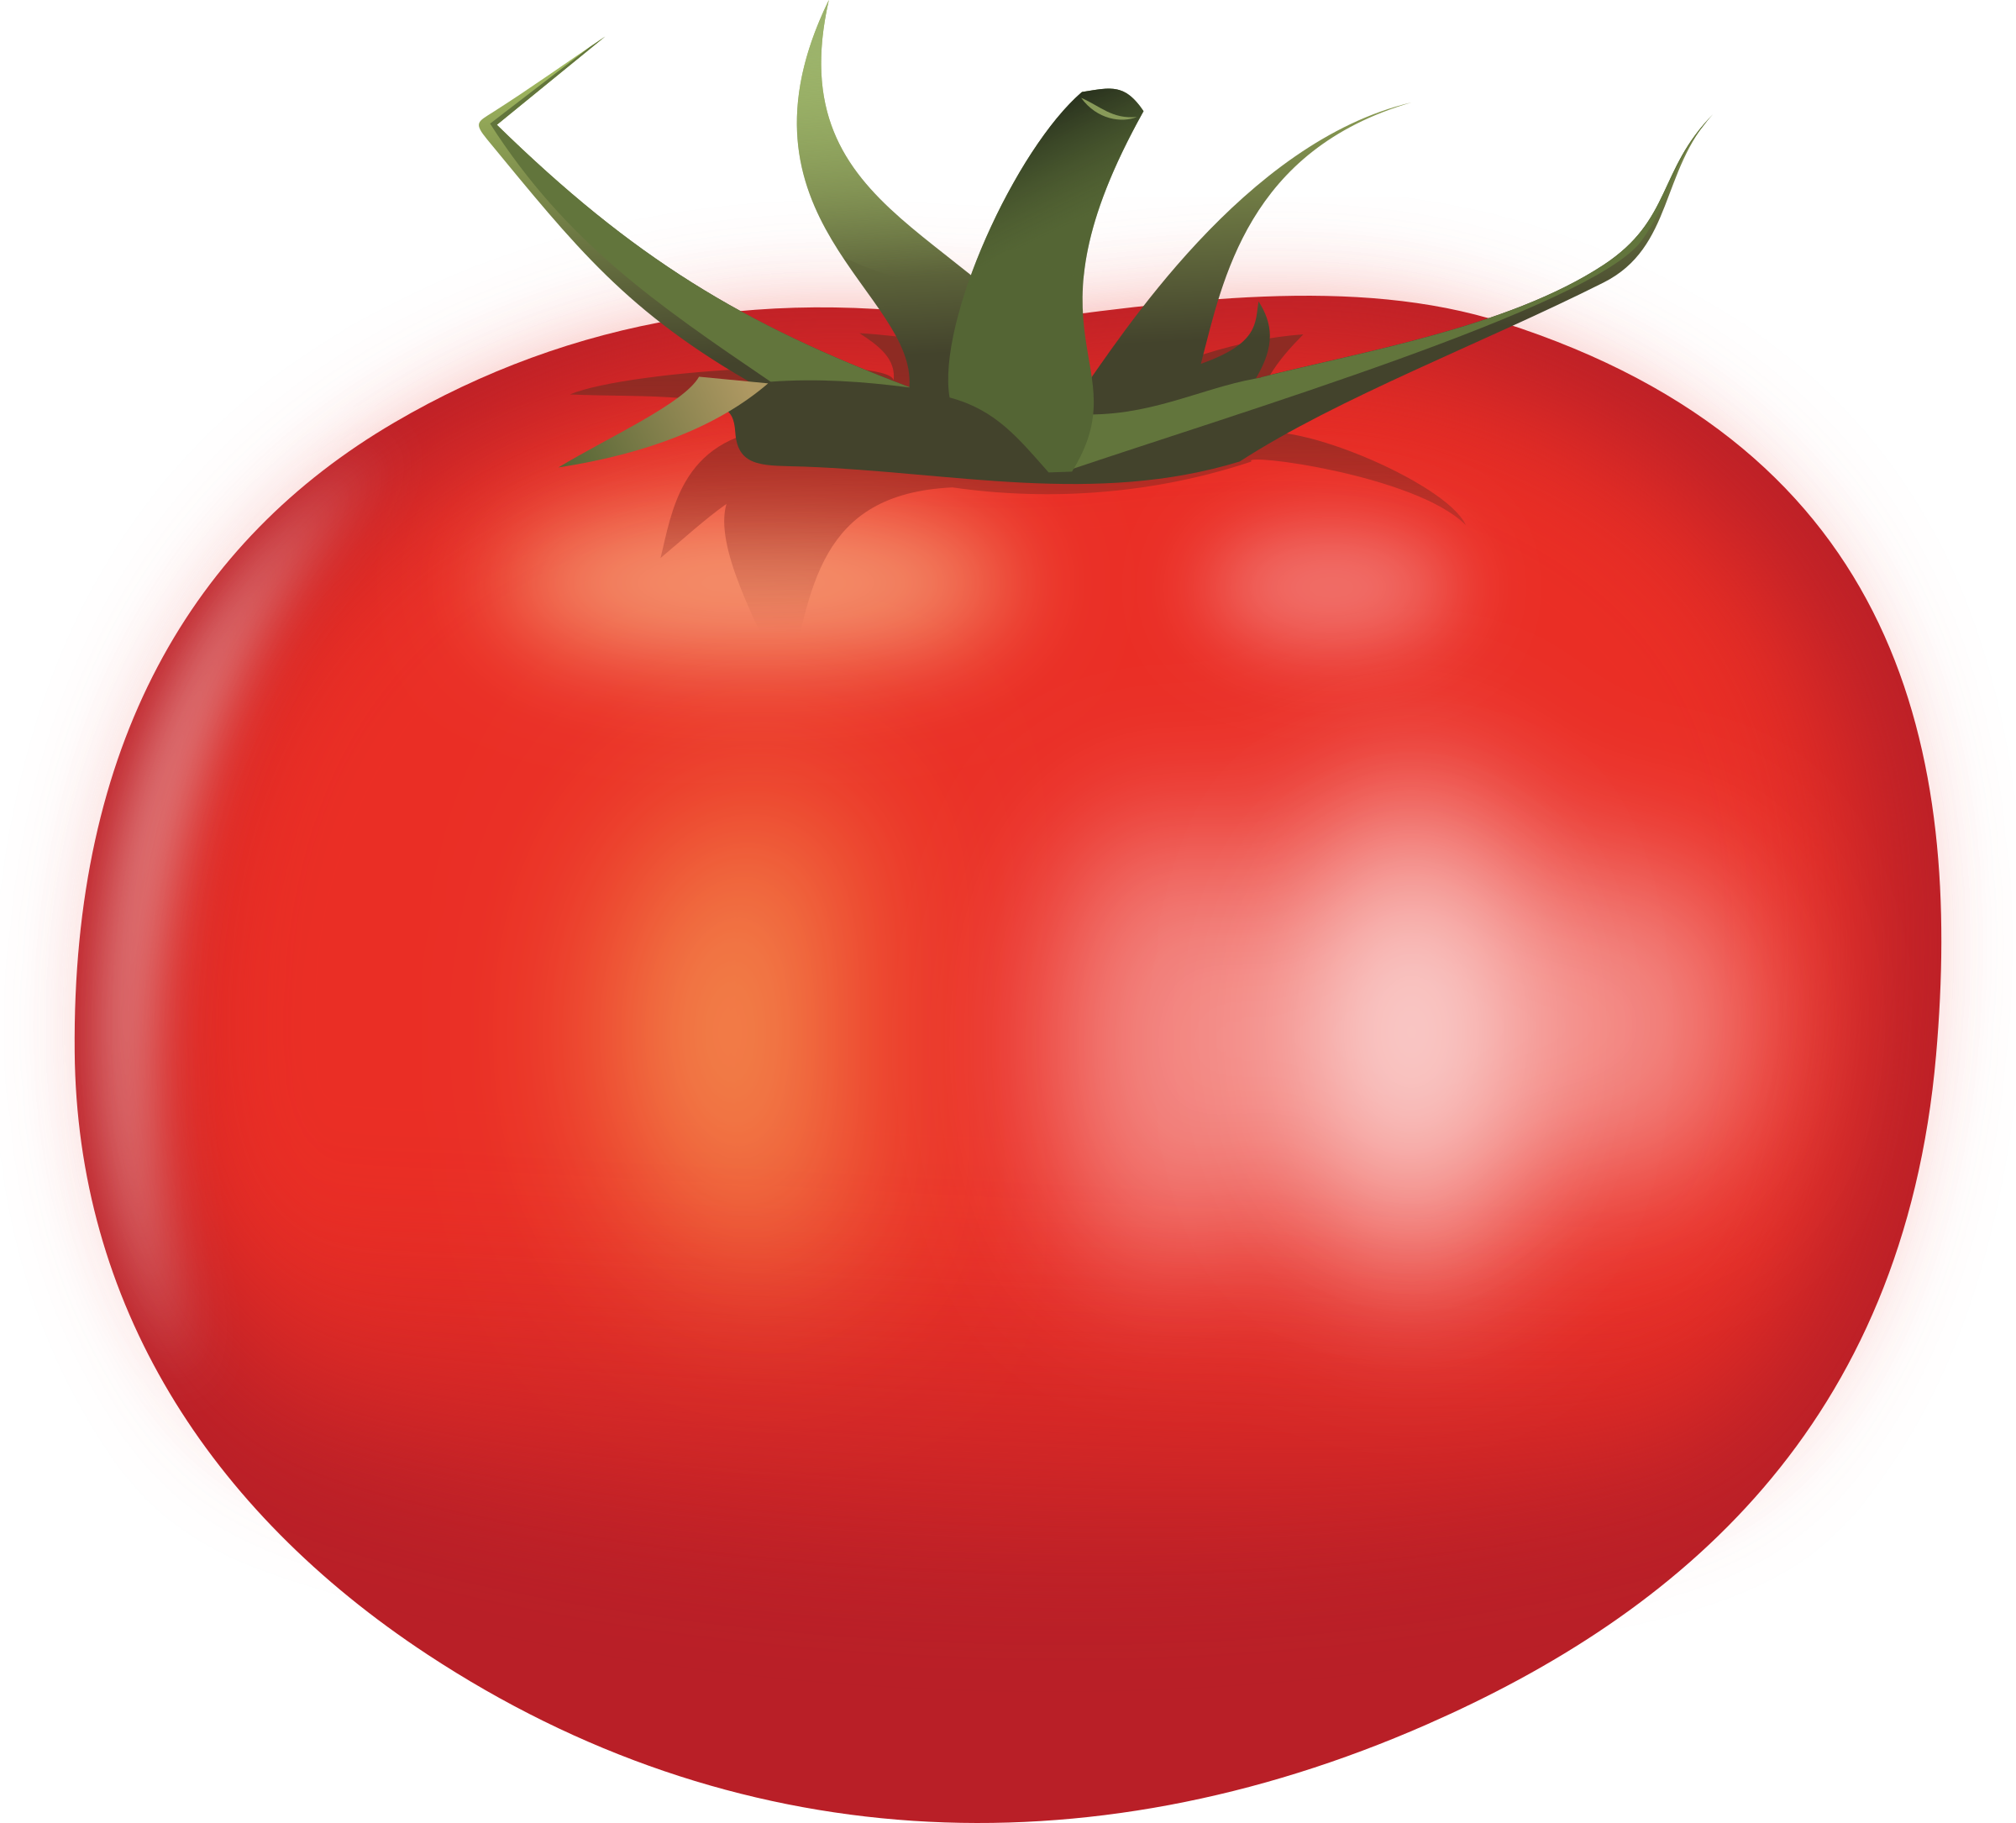 Tomatoes clipart file. Tomato by rones icons